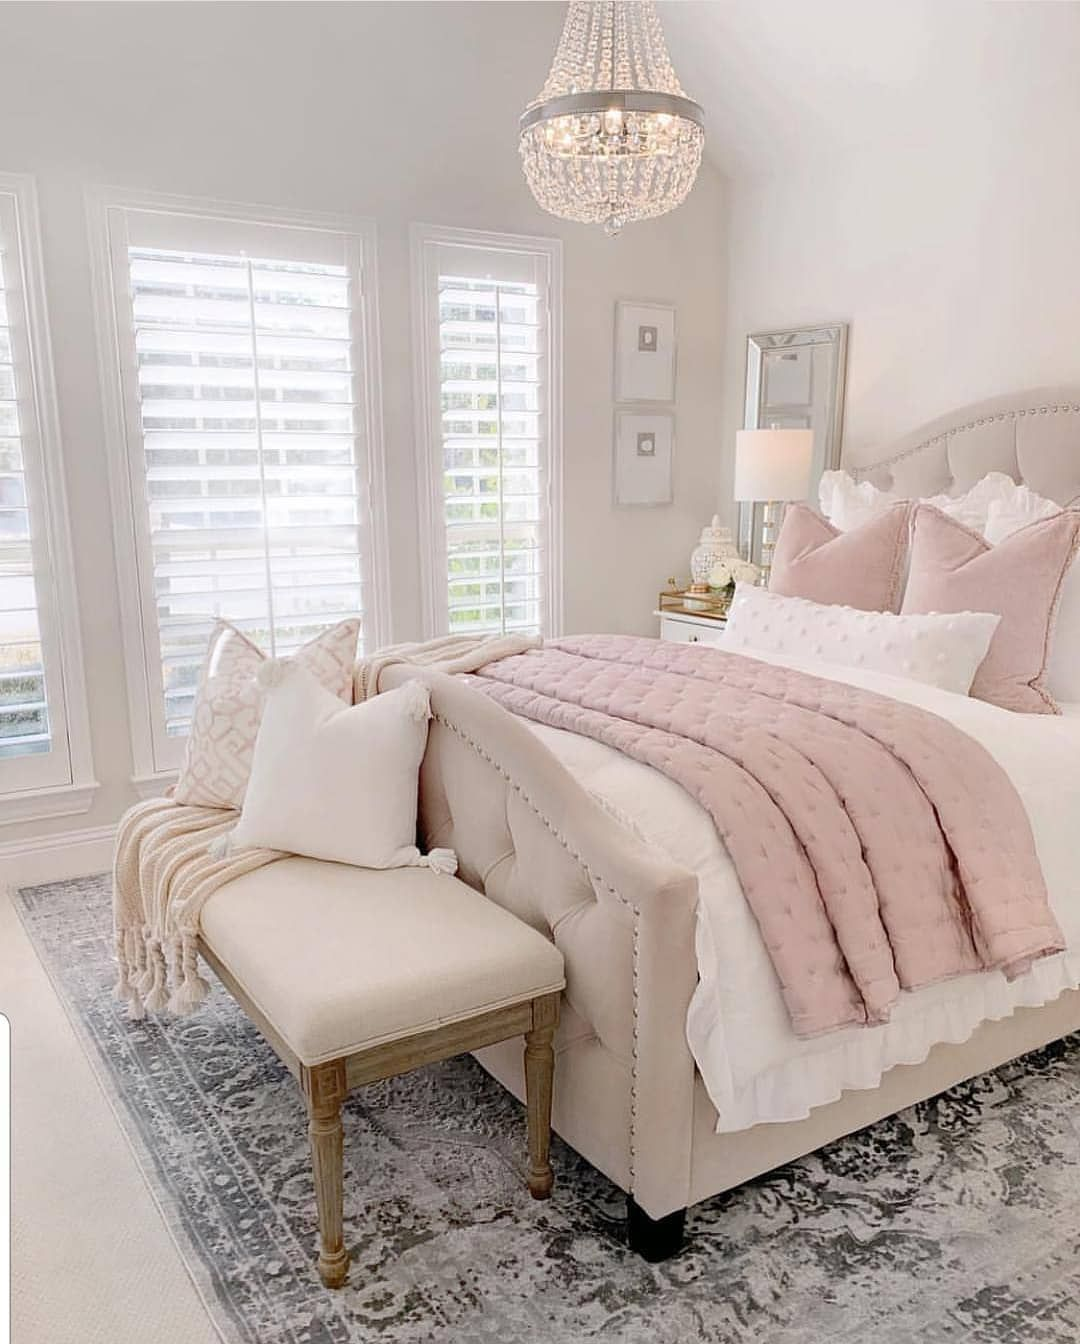 Deco Chambre Adulte Beige Et Rouge Grace Home Decor On Instagram Bright Beautiful Bedroom